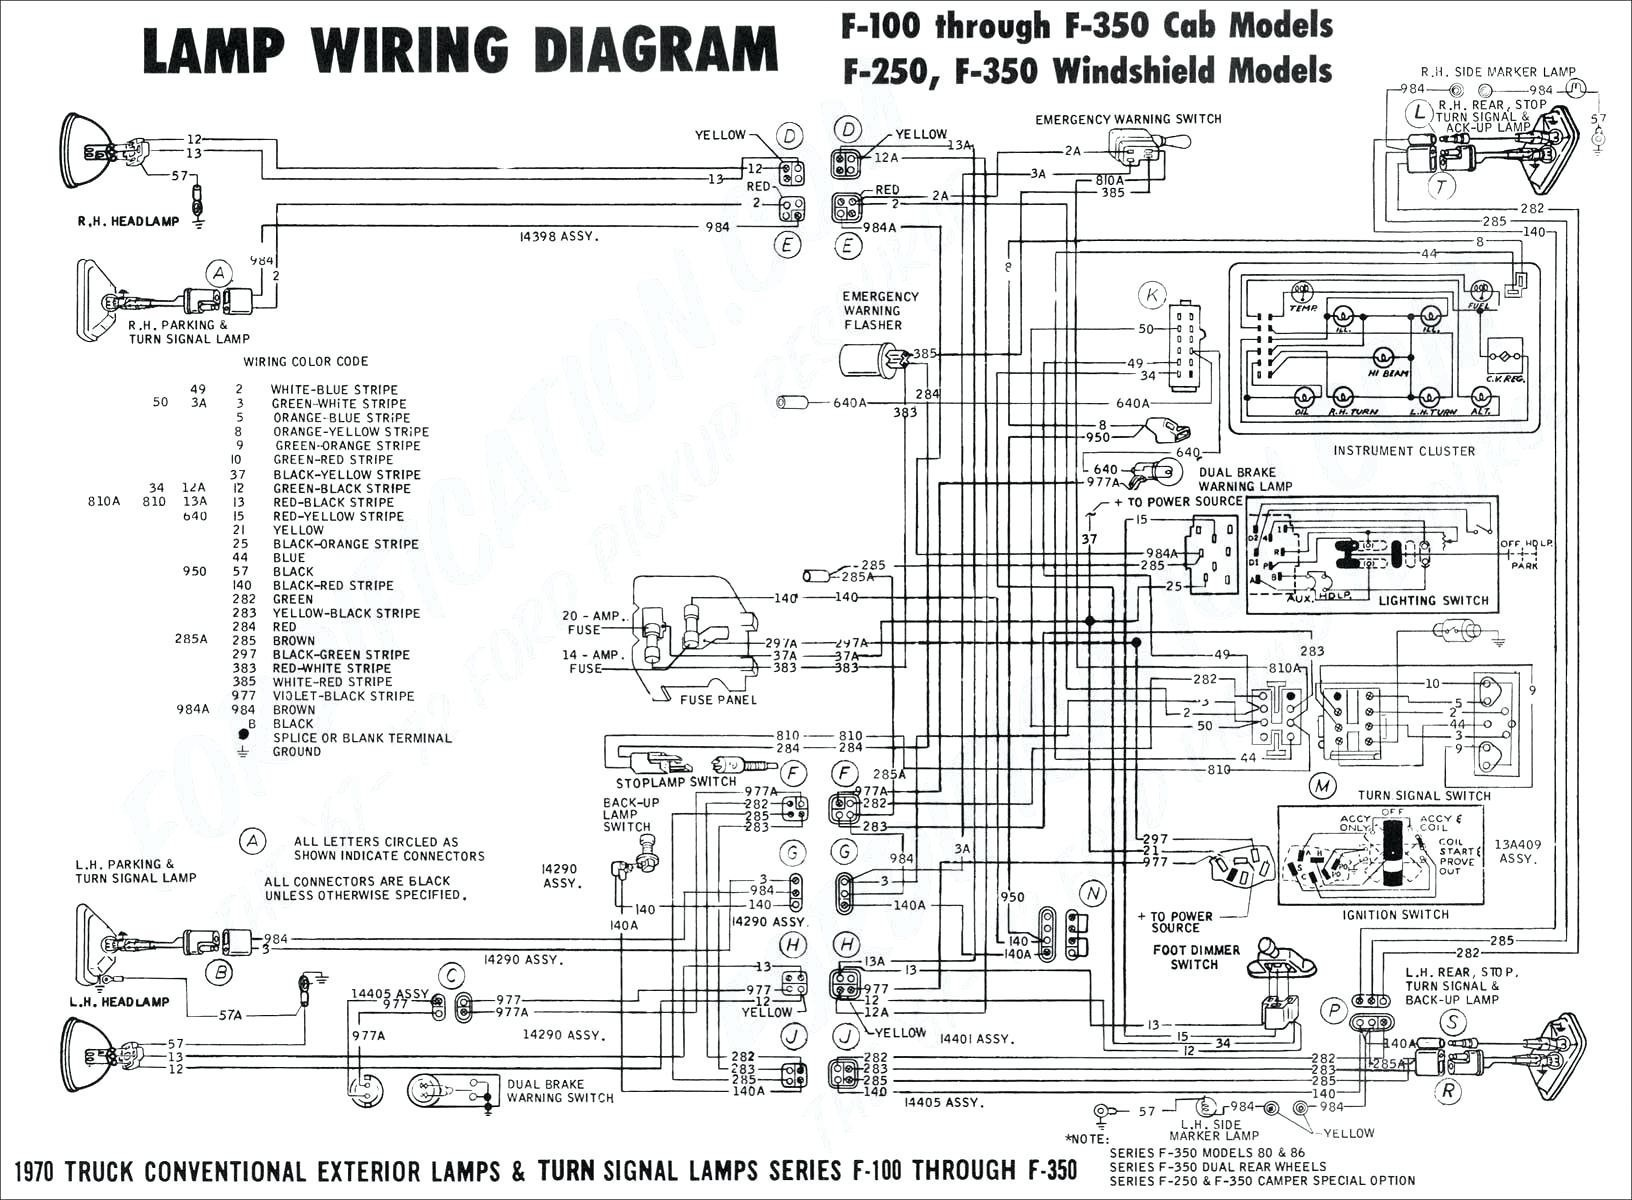 1979 Chevy Truck Radio Wiring Diagram 1981 Goldwing Wiring Diagram Of 1979 Chevy Truck Radio Wiring Diagram